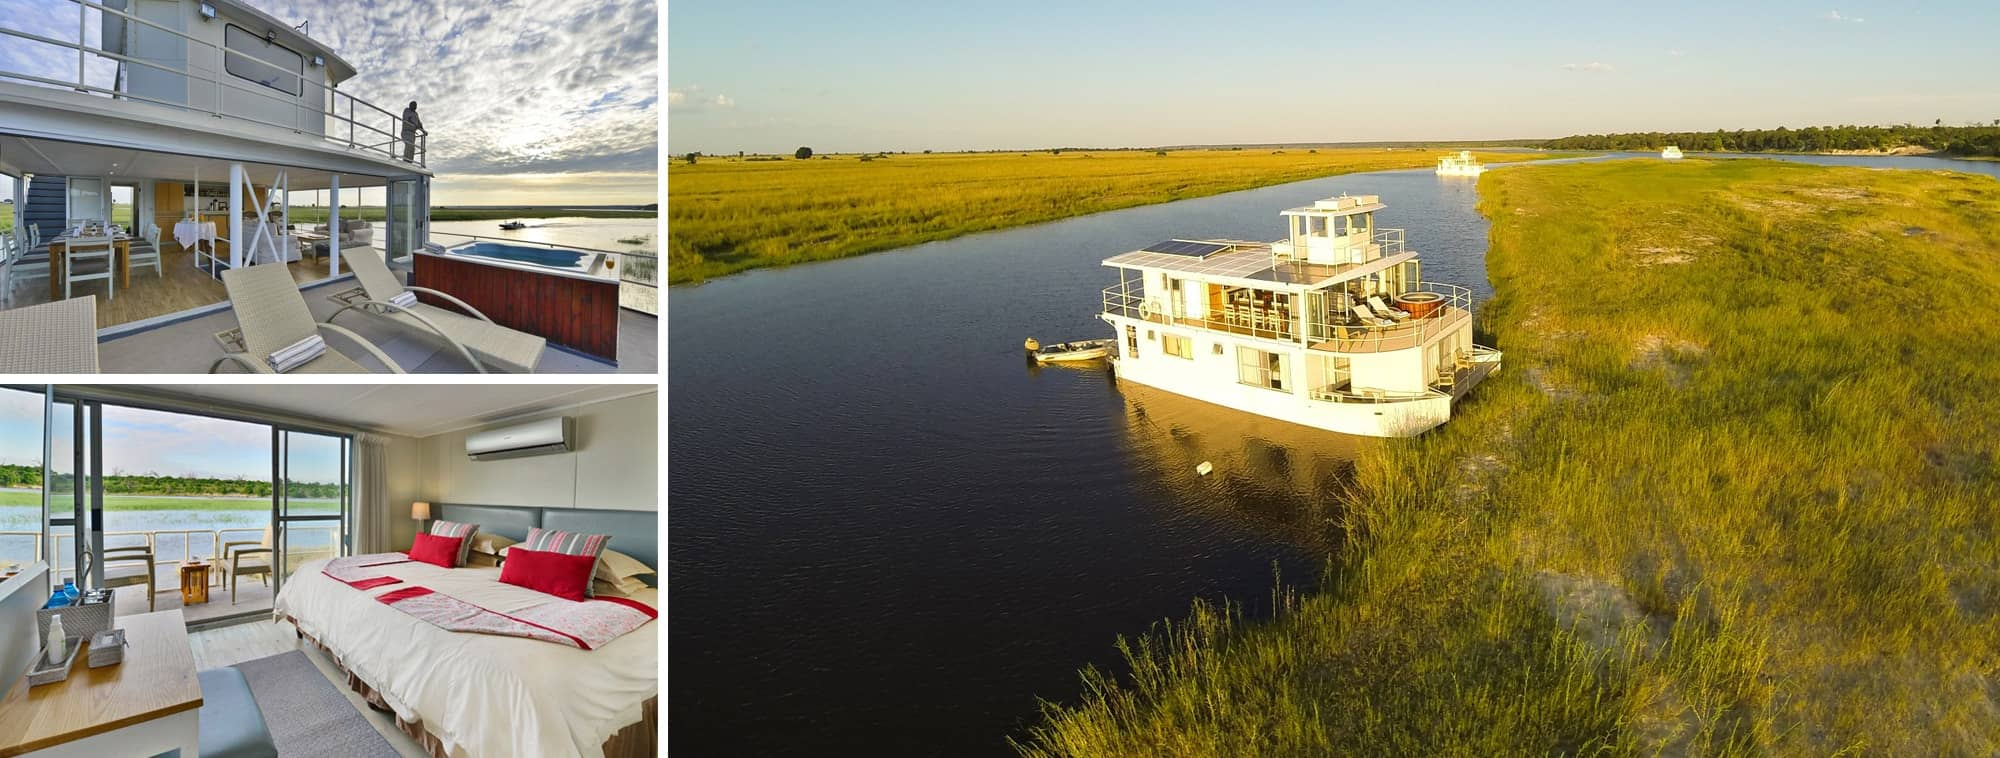 Chobe River Boathouse Short Stay Banner